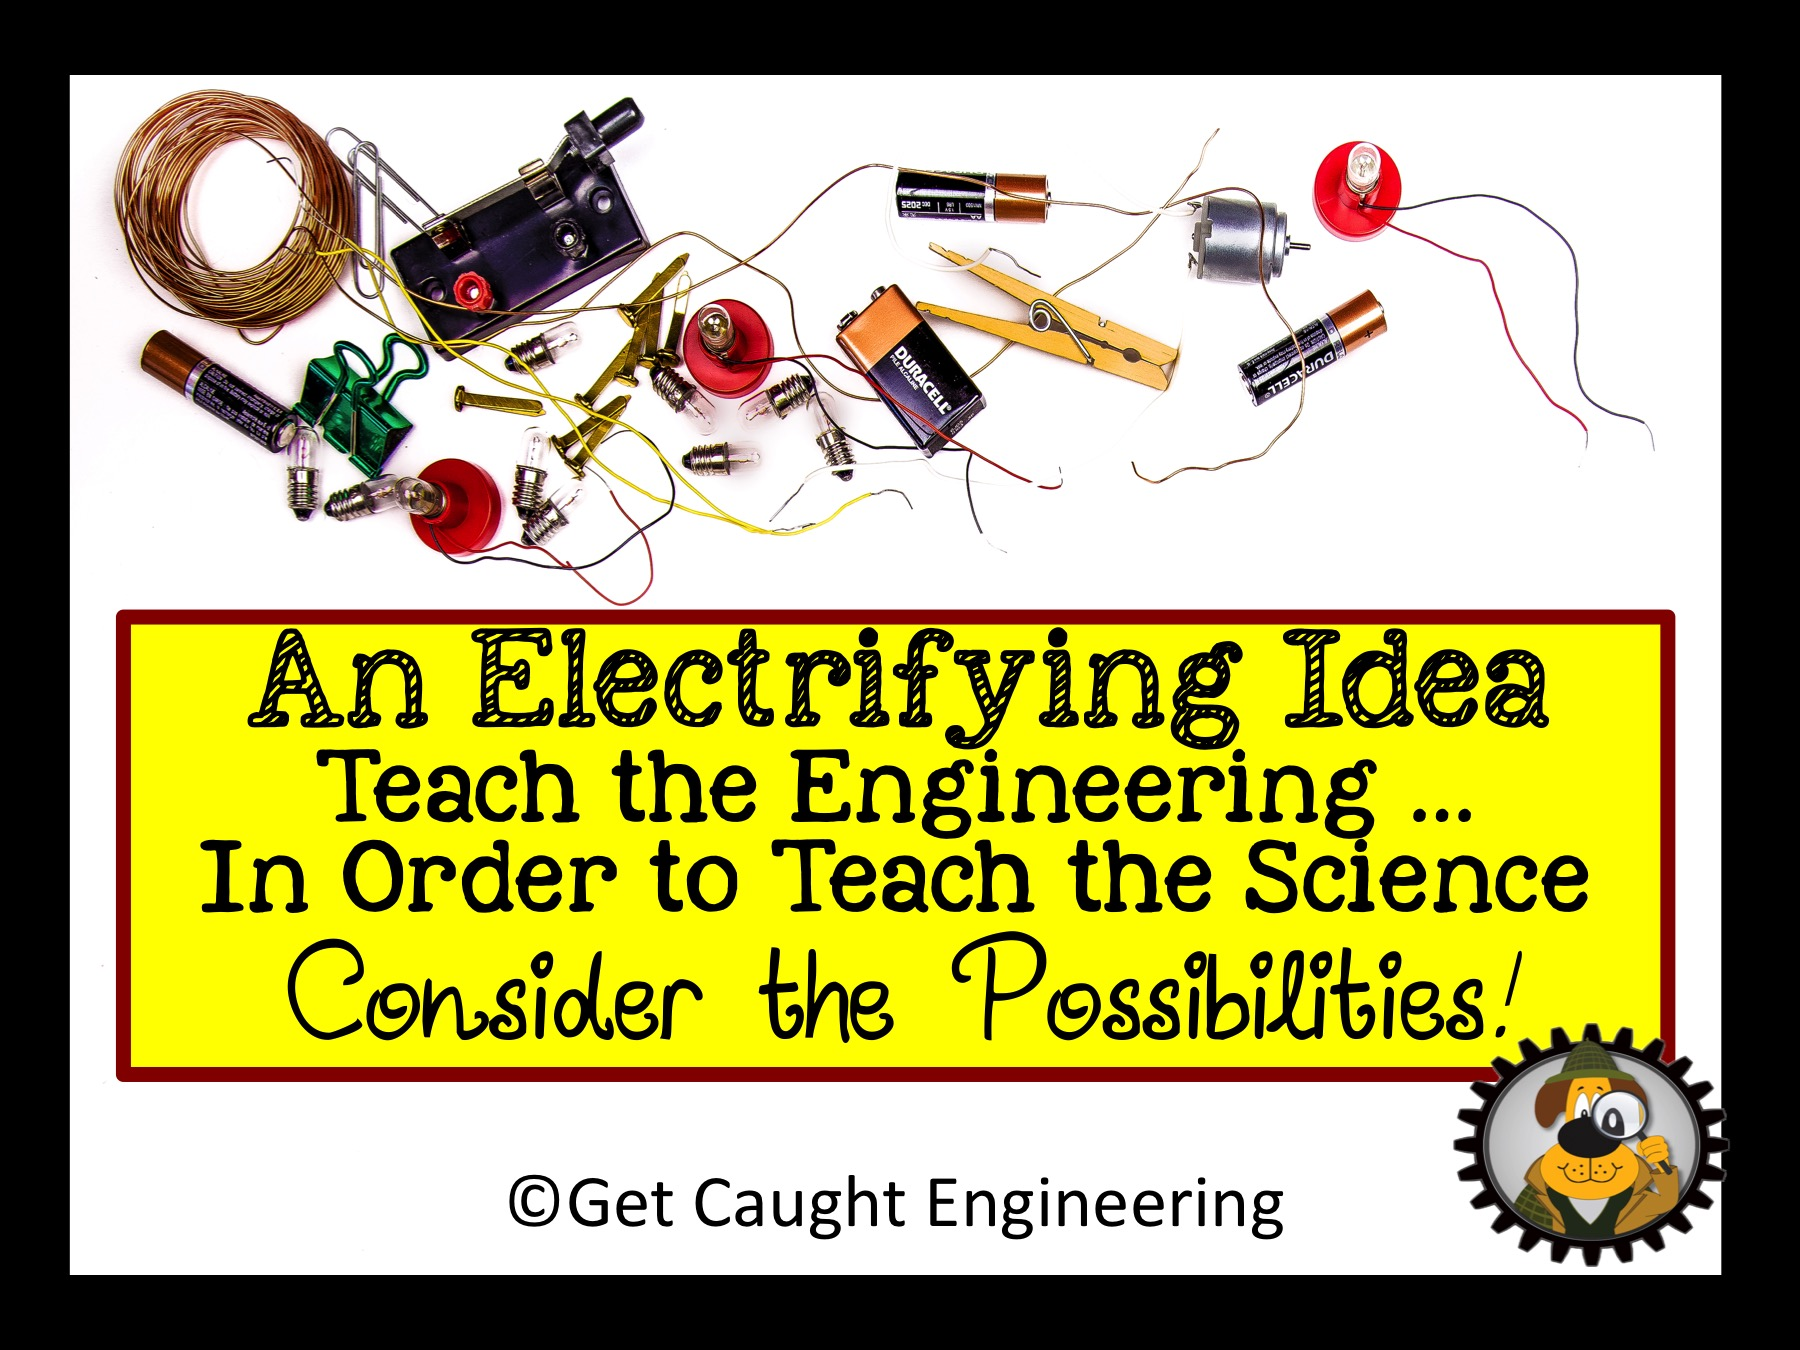 Teach the Engineering….in Order to Teach the Science